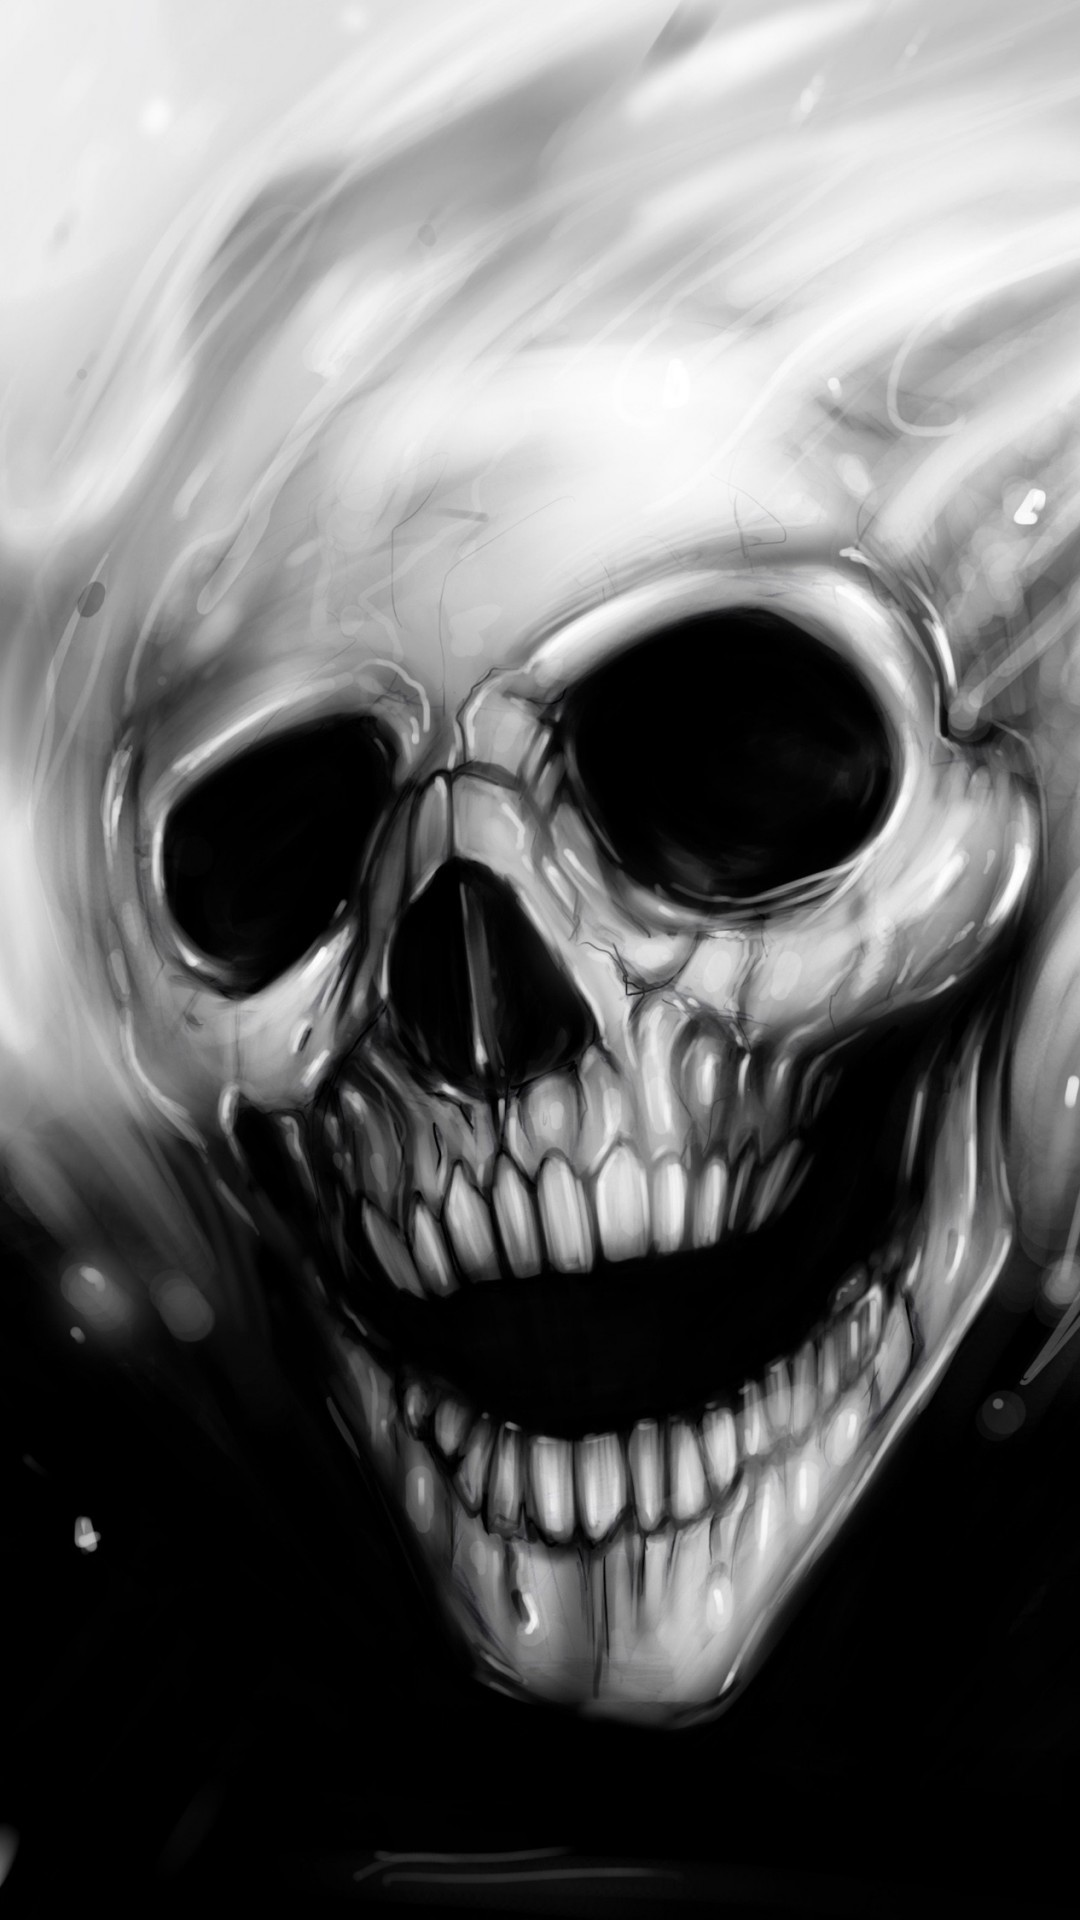 Scary Wallpaper for iPhone (55+ images)